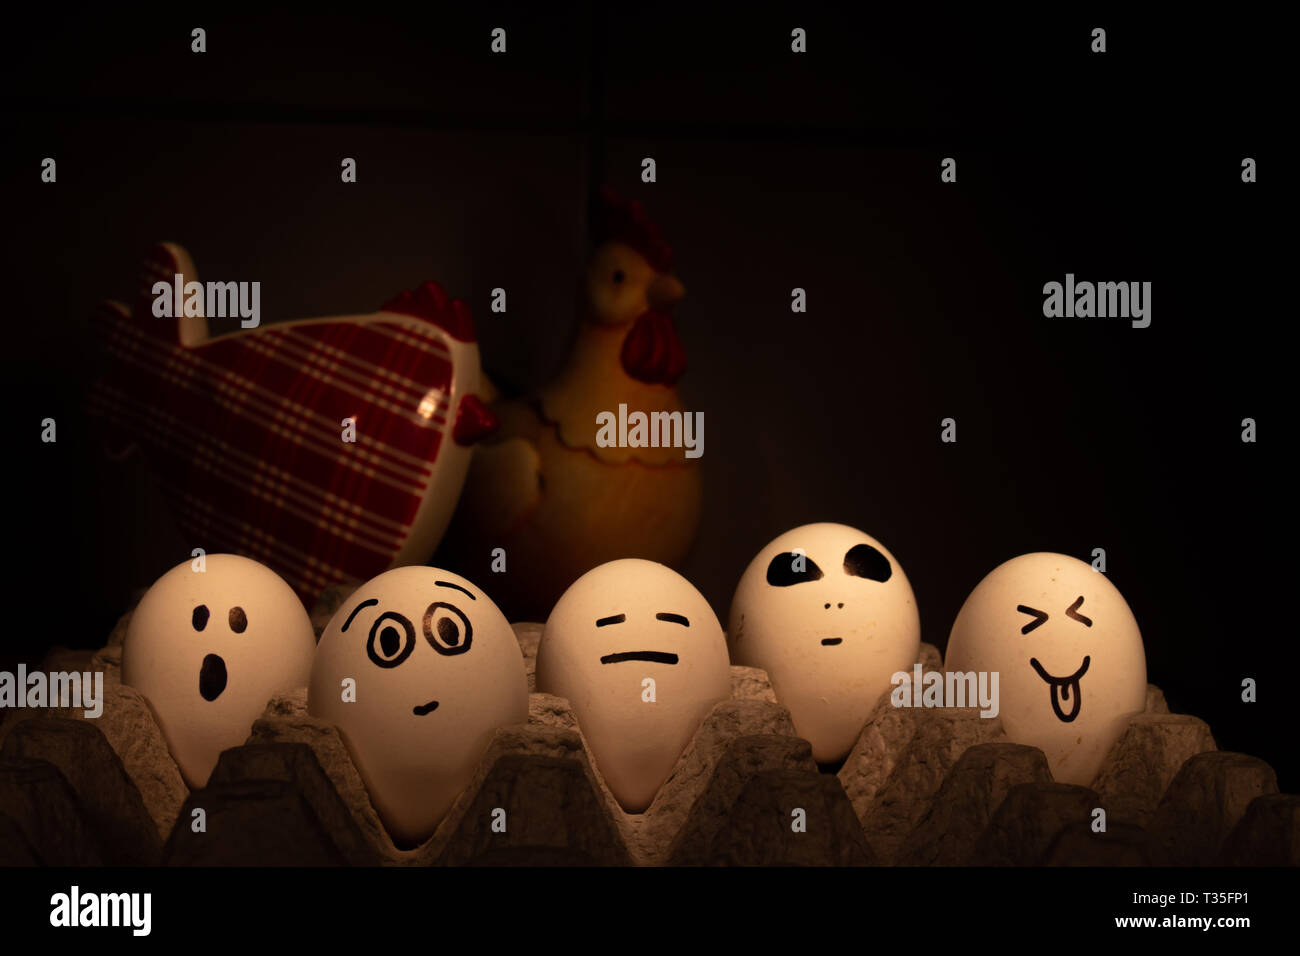 Several eggs with funny faces. They are watched over by two chickens out of focus. Conceptual image - Stock Image